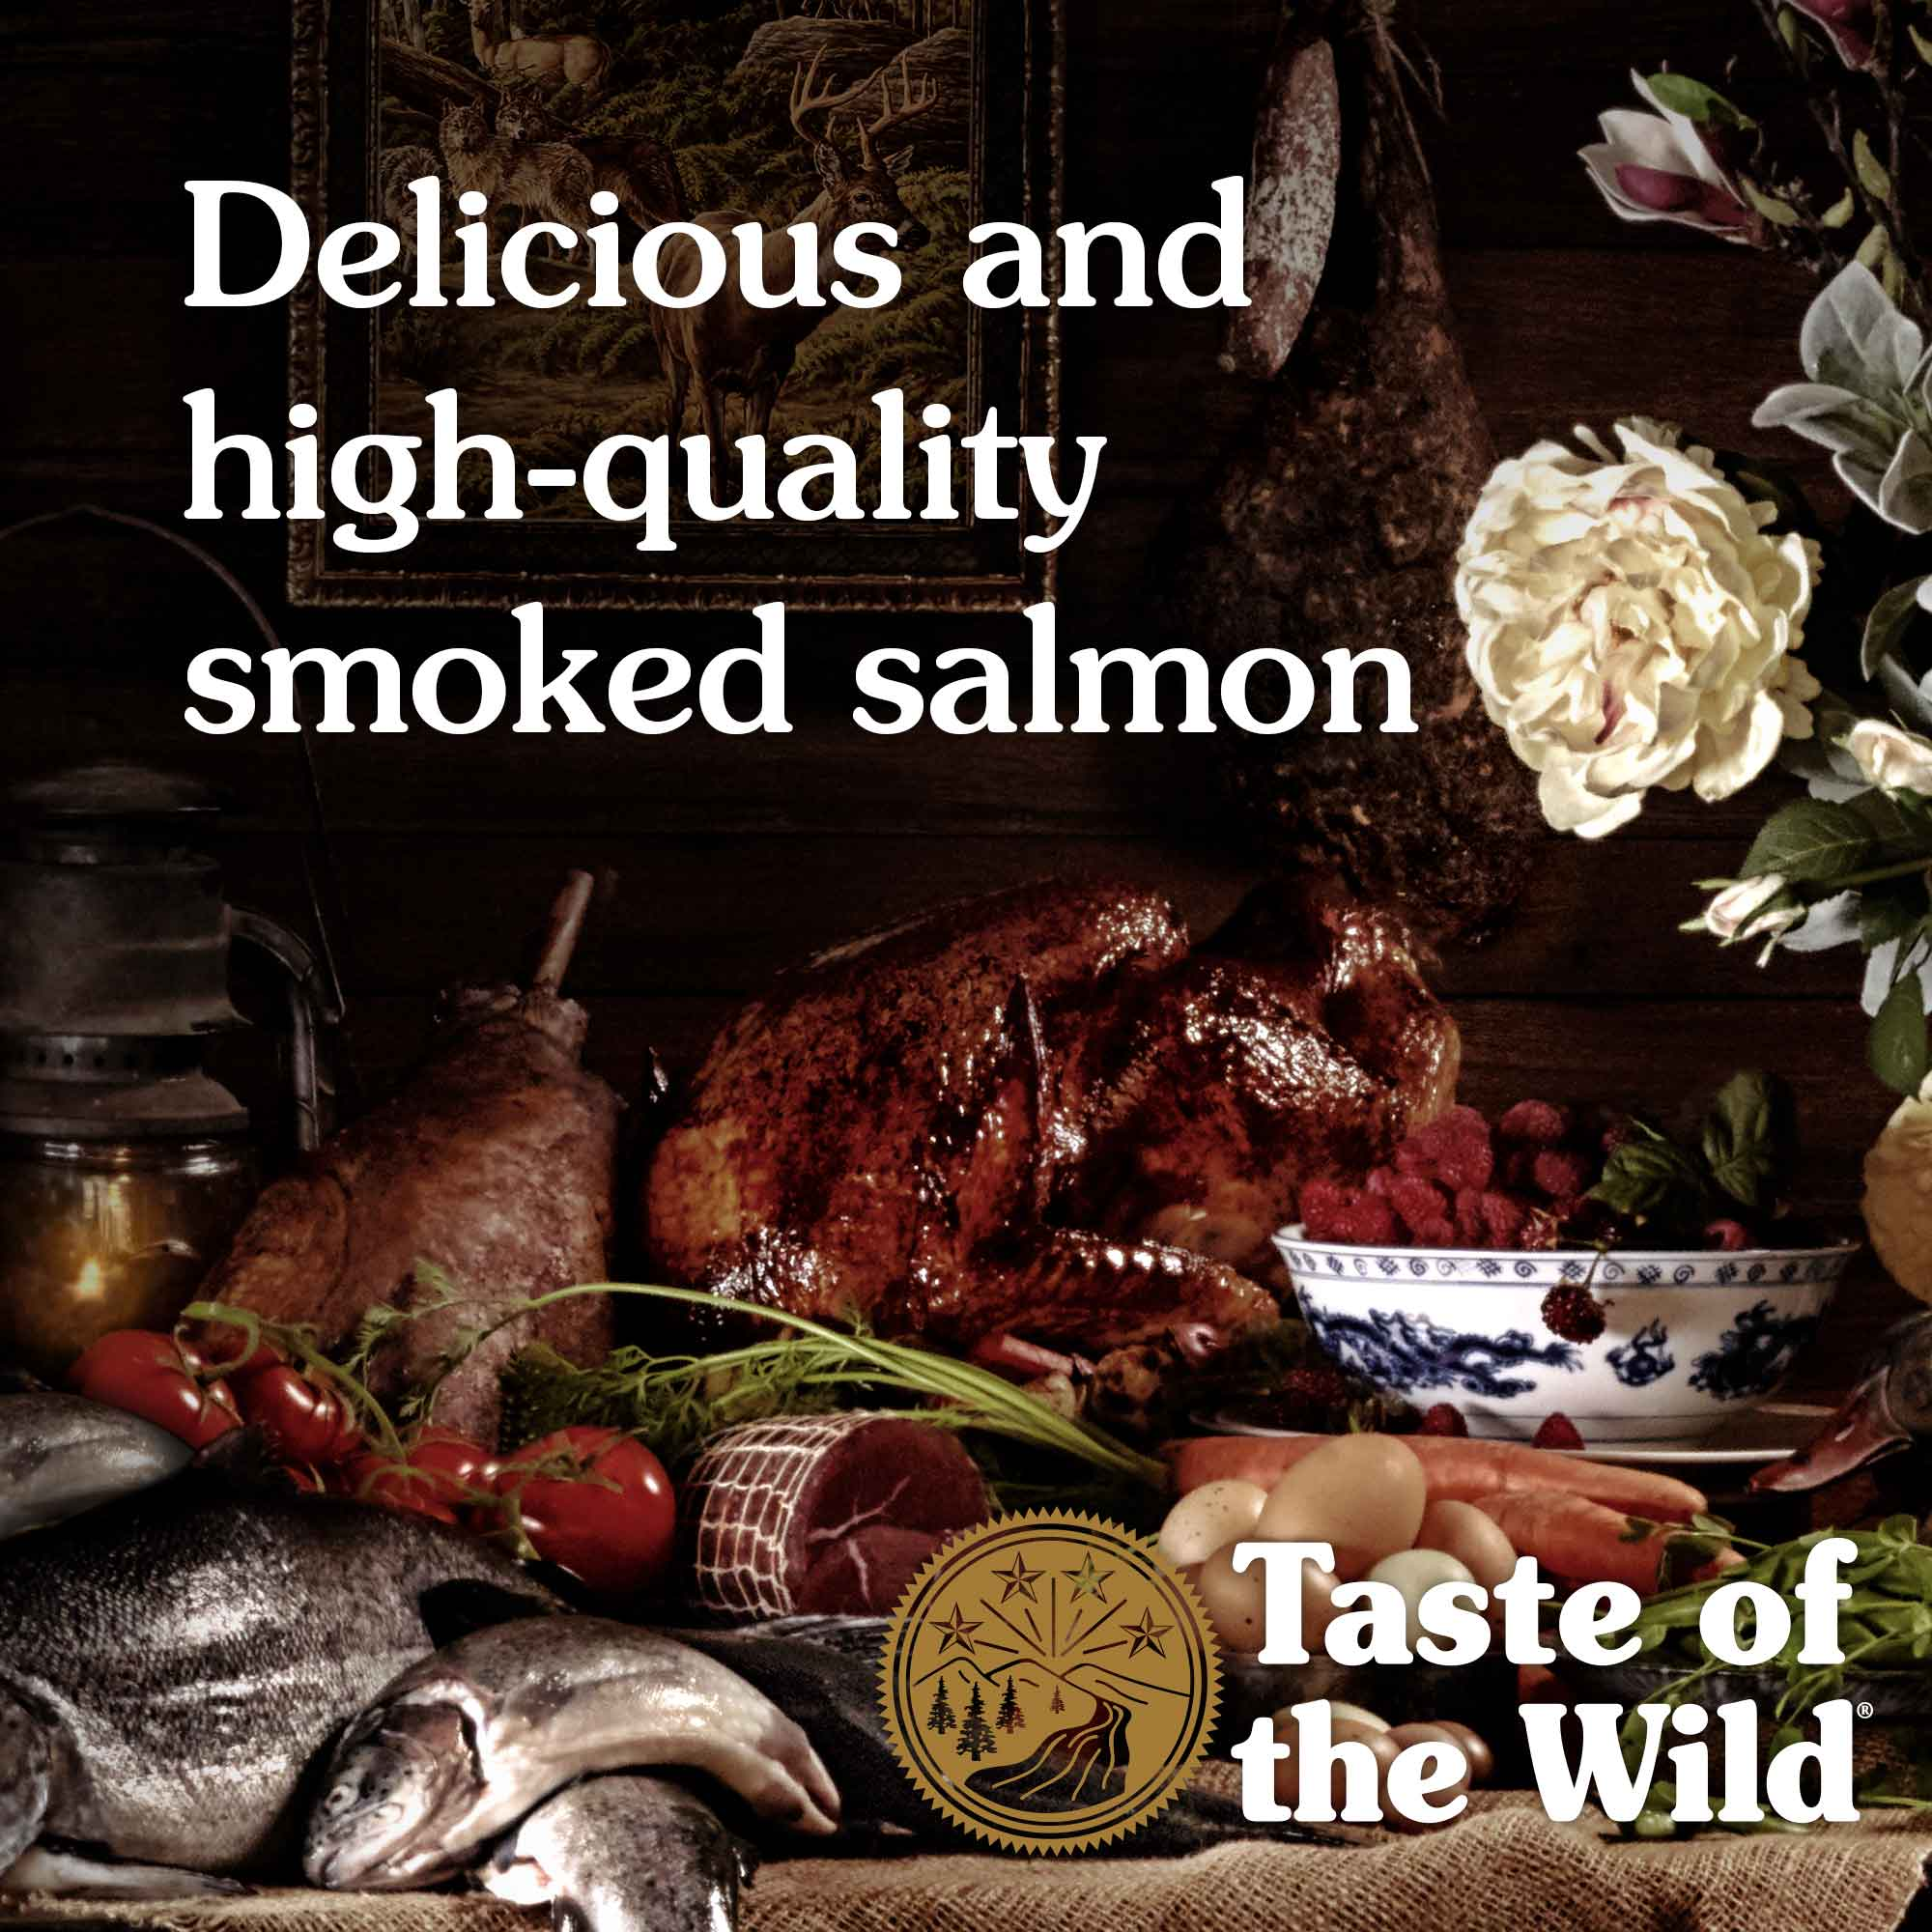 Delicious and high-quality smoked salmon